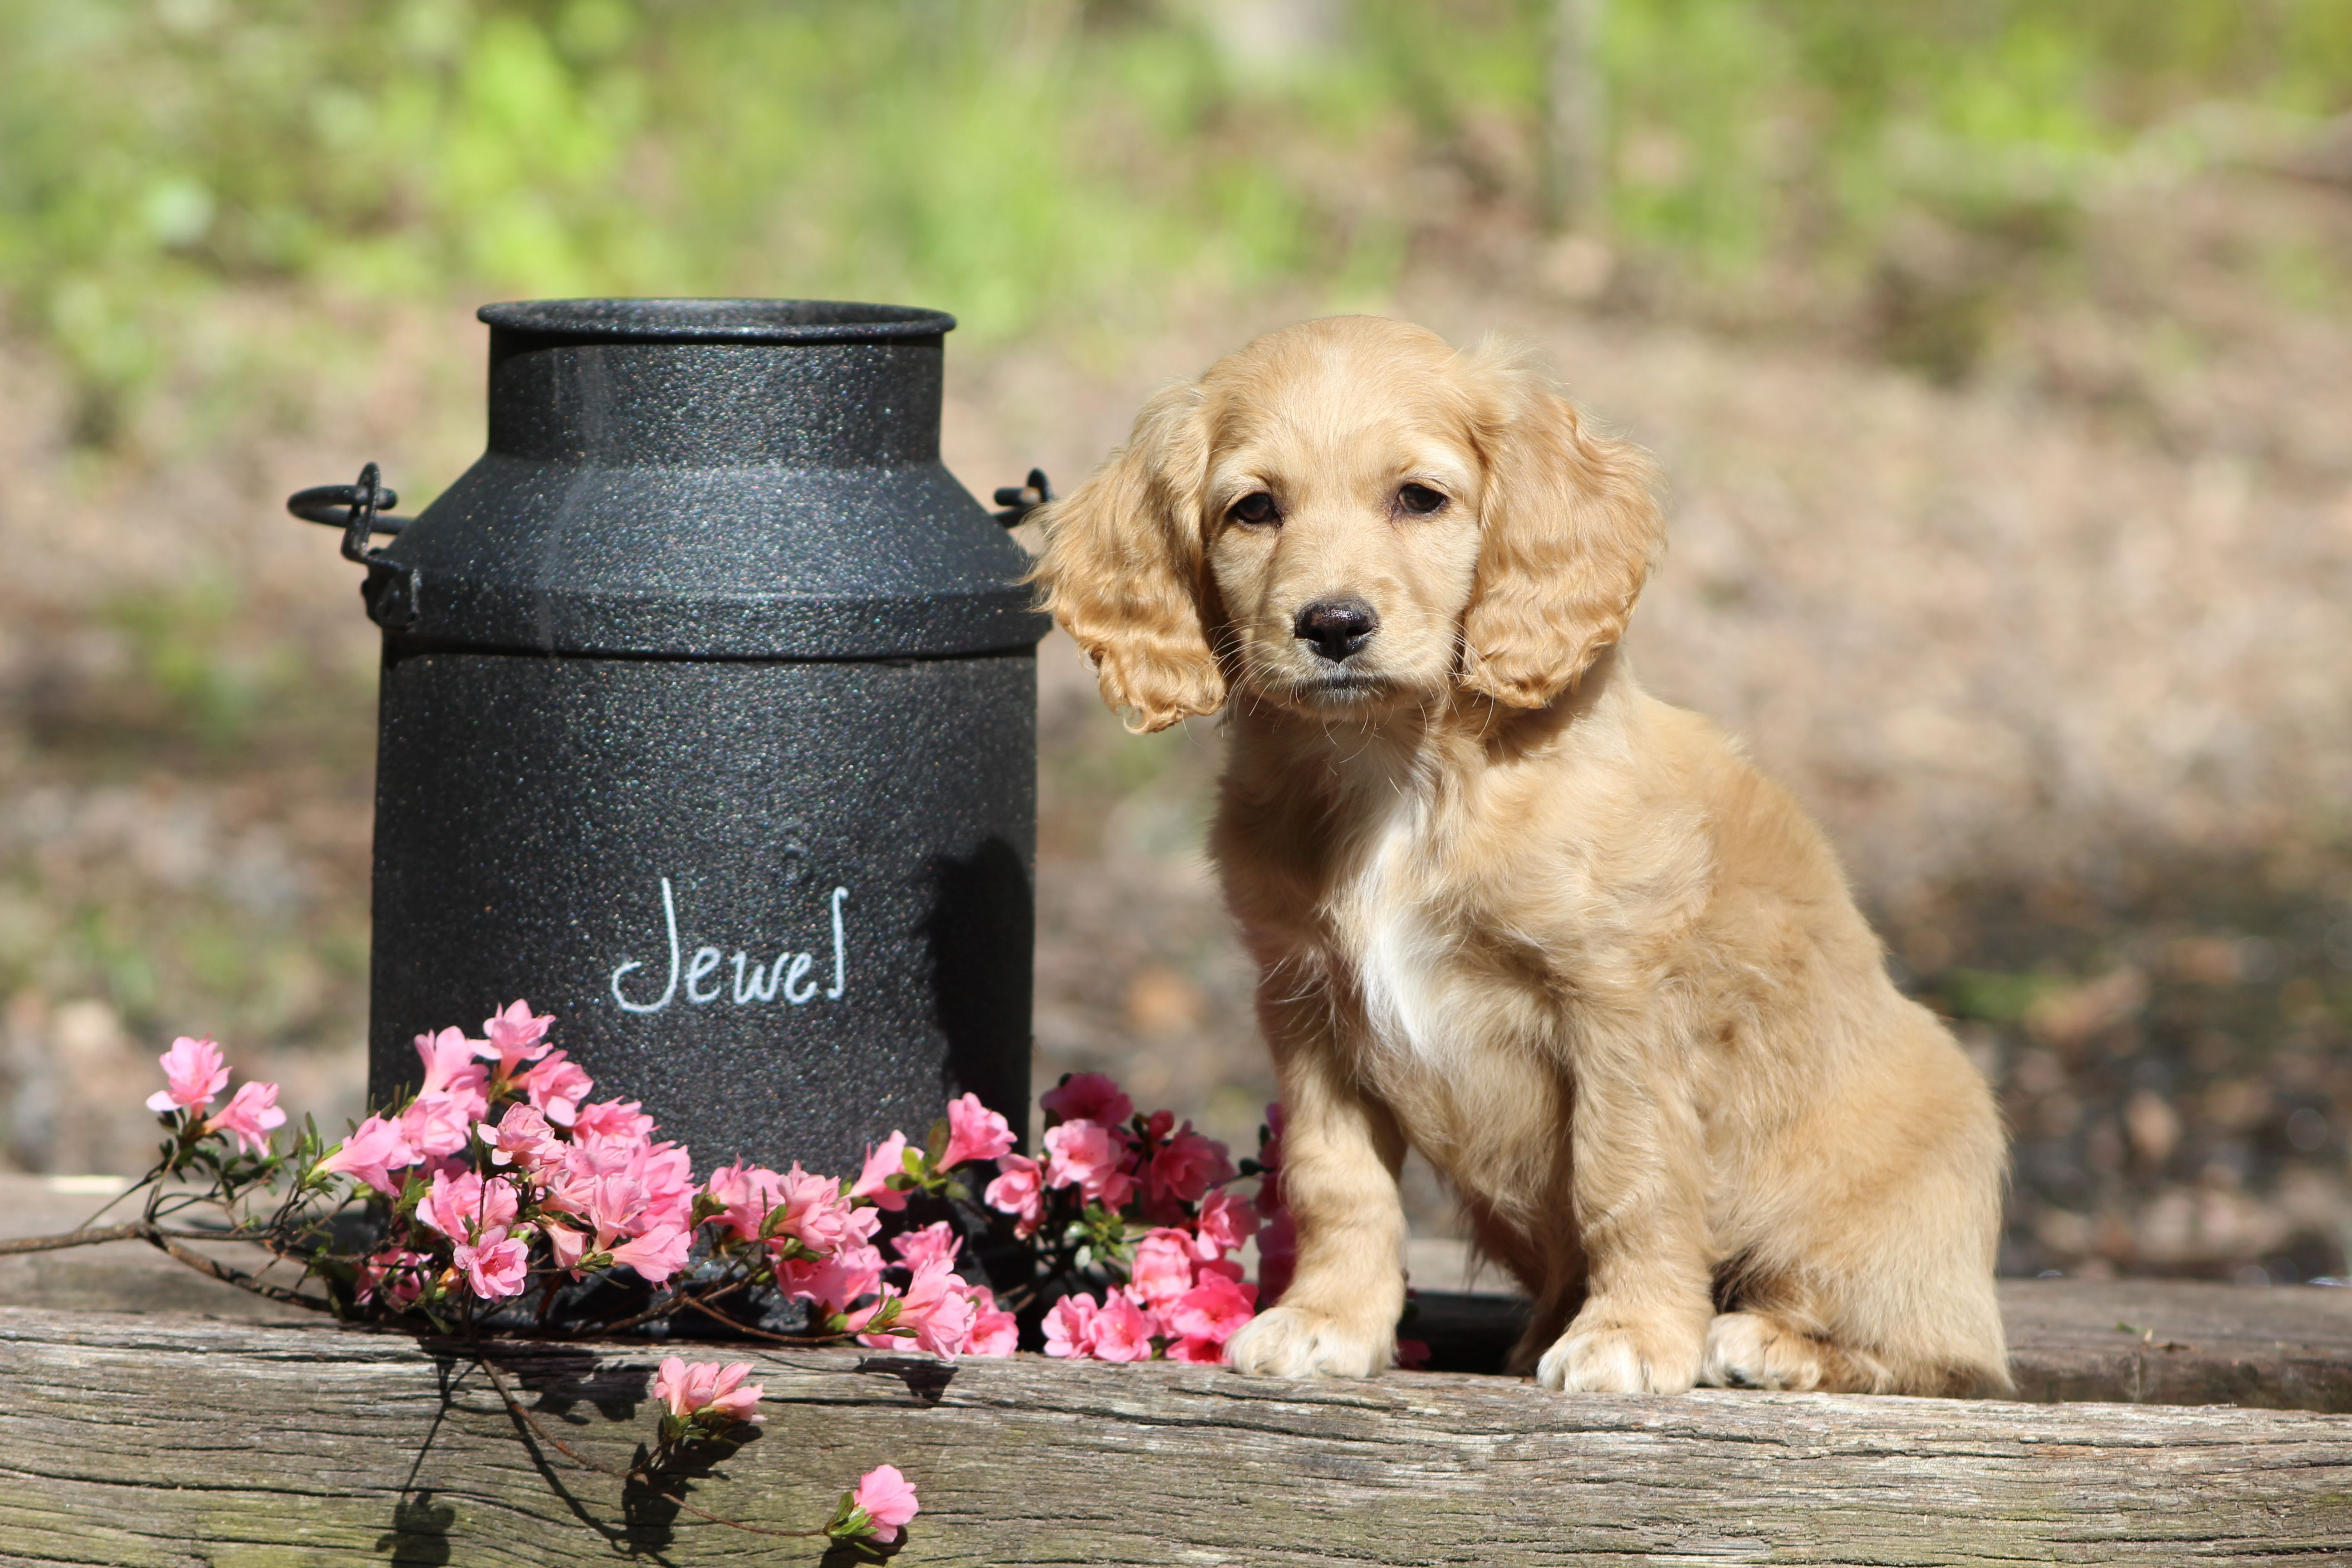 Meet Jewel Female Cockapoo Puppy For Sale In Virginia Beach Va